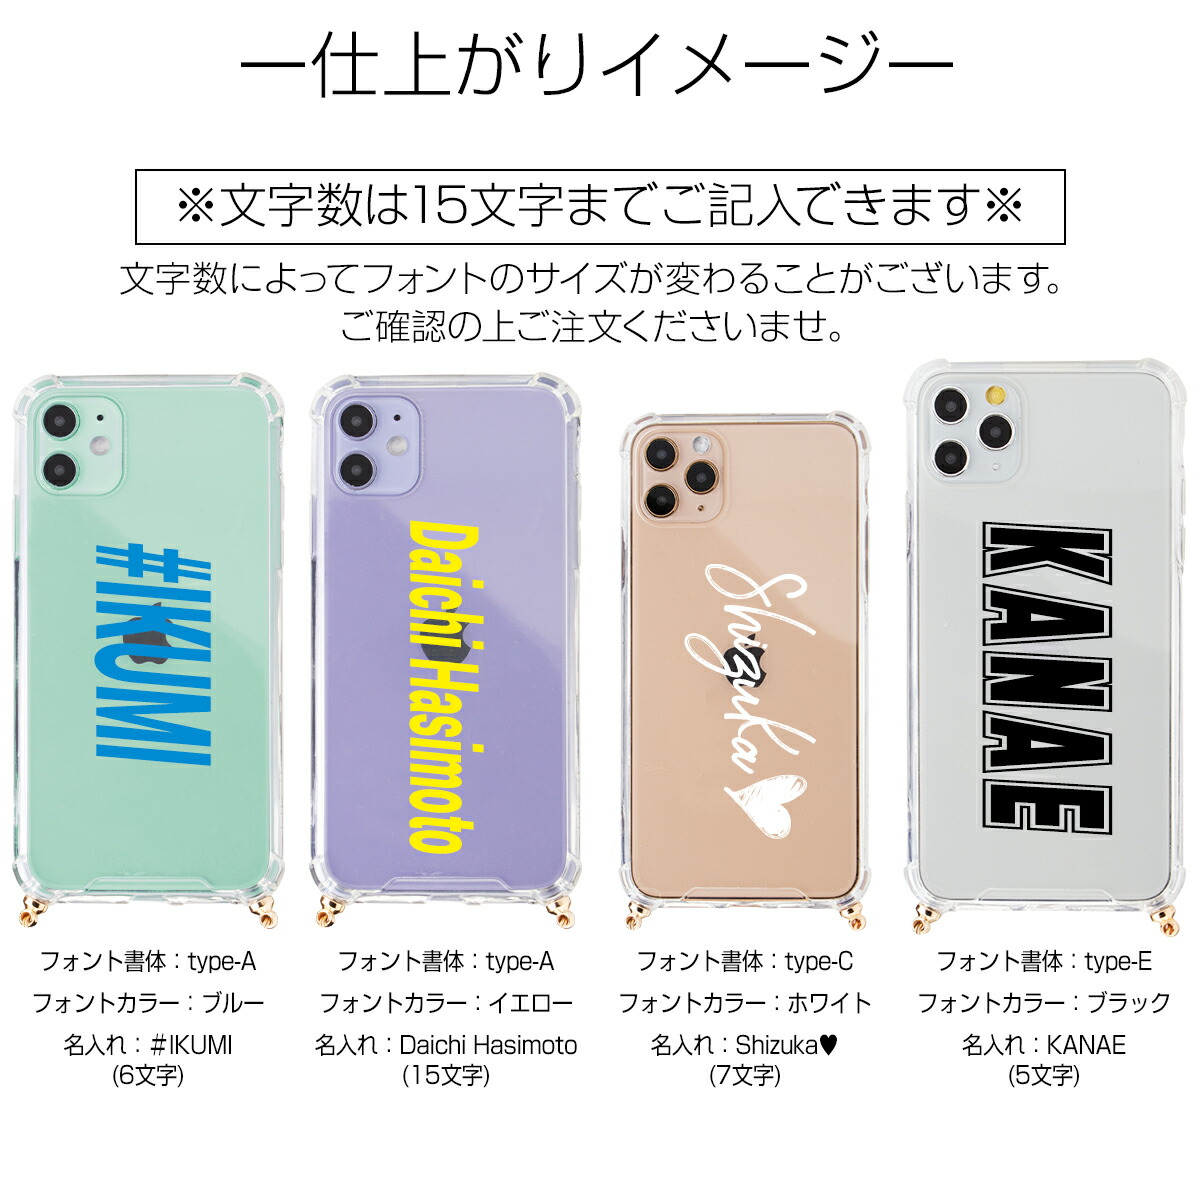 iPhone11 iPhone11 Pro iPhone 11 Pro Max iPhone X iPhone XR iPhone7/8  名入れ対応 ショルダー型ストラップケース